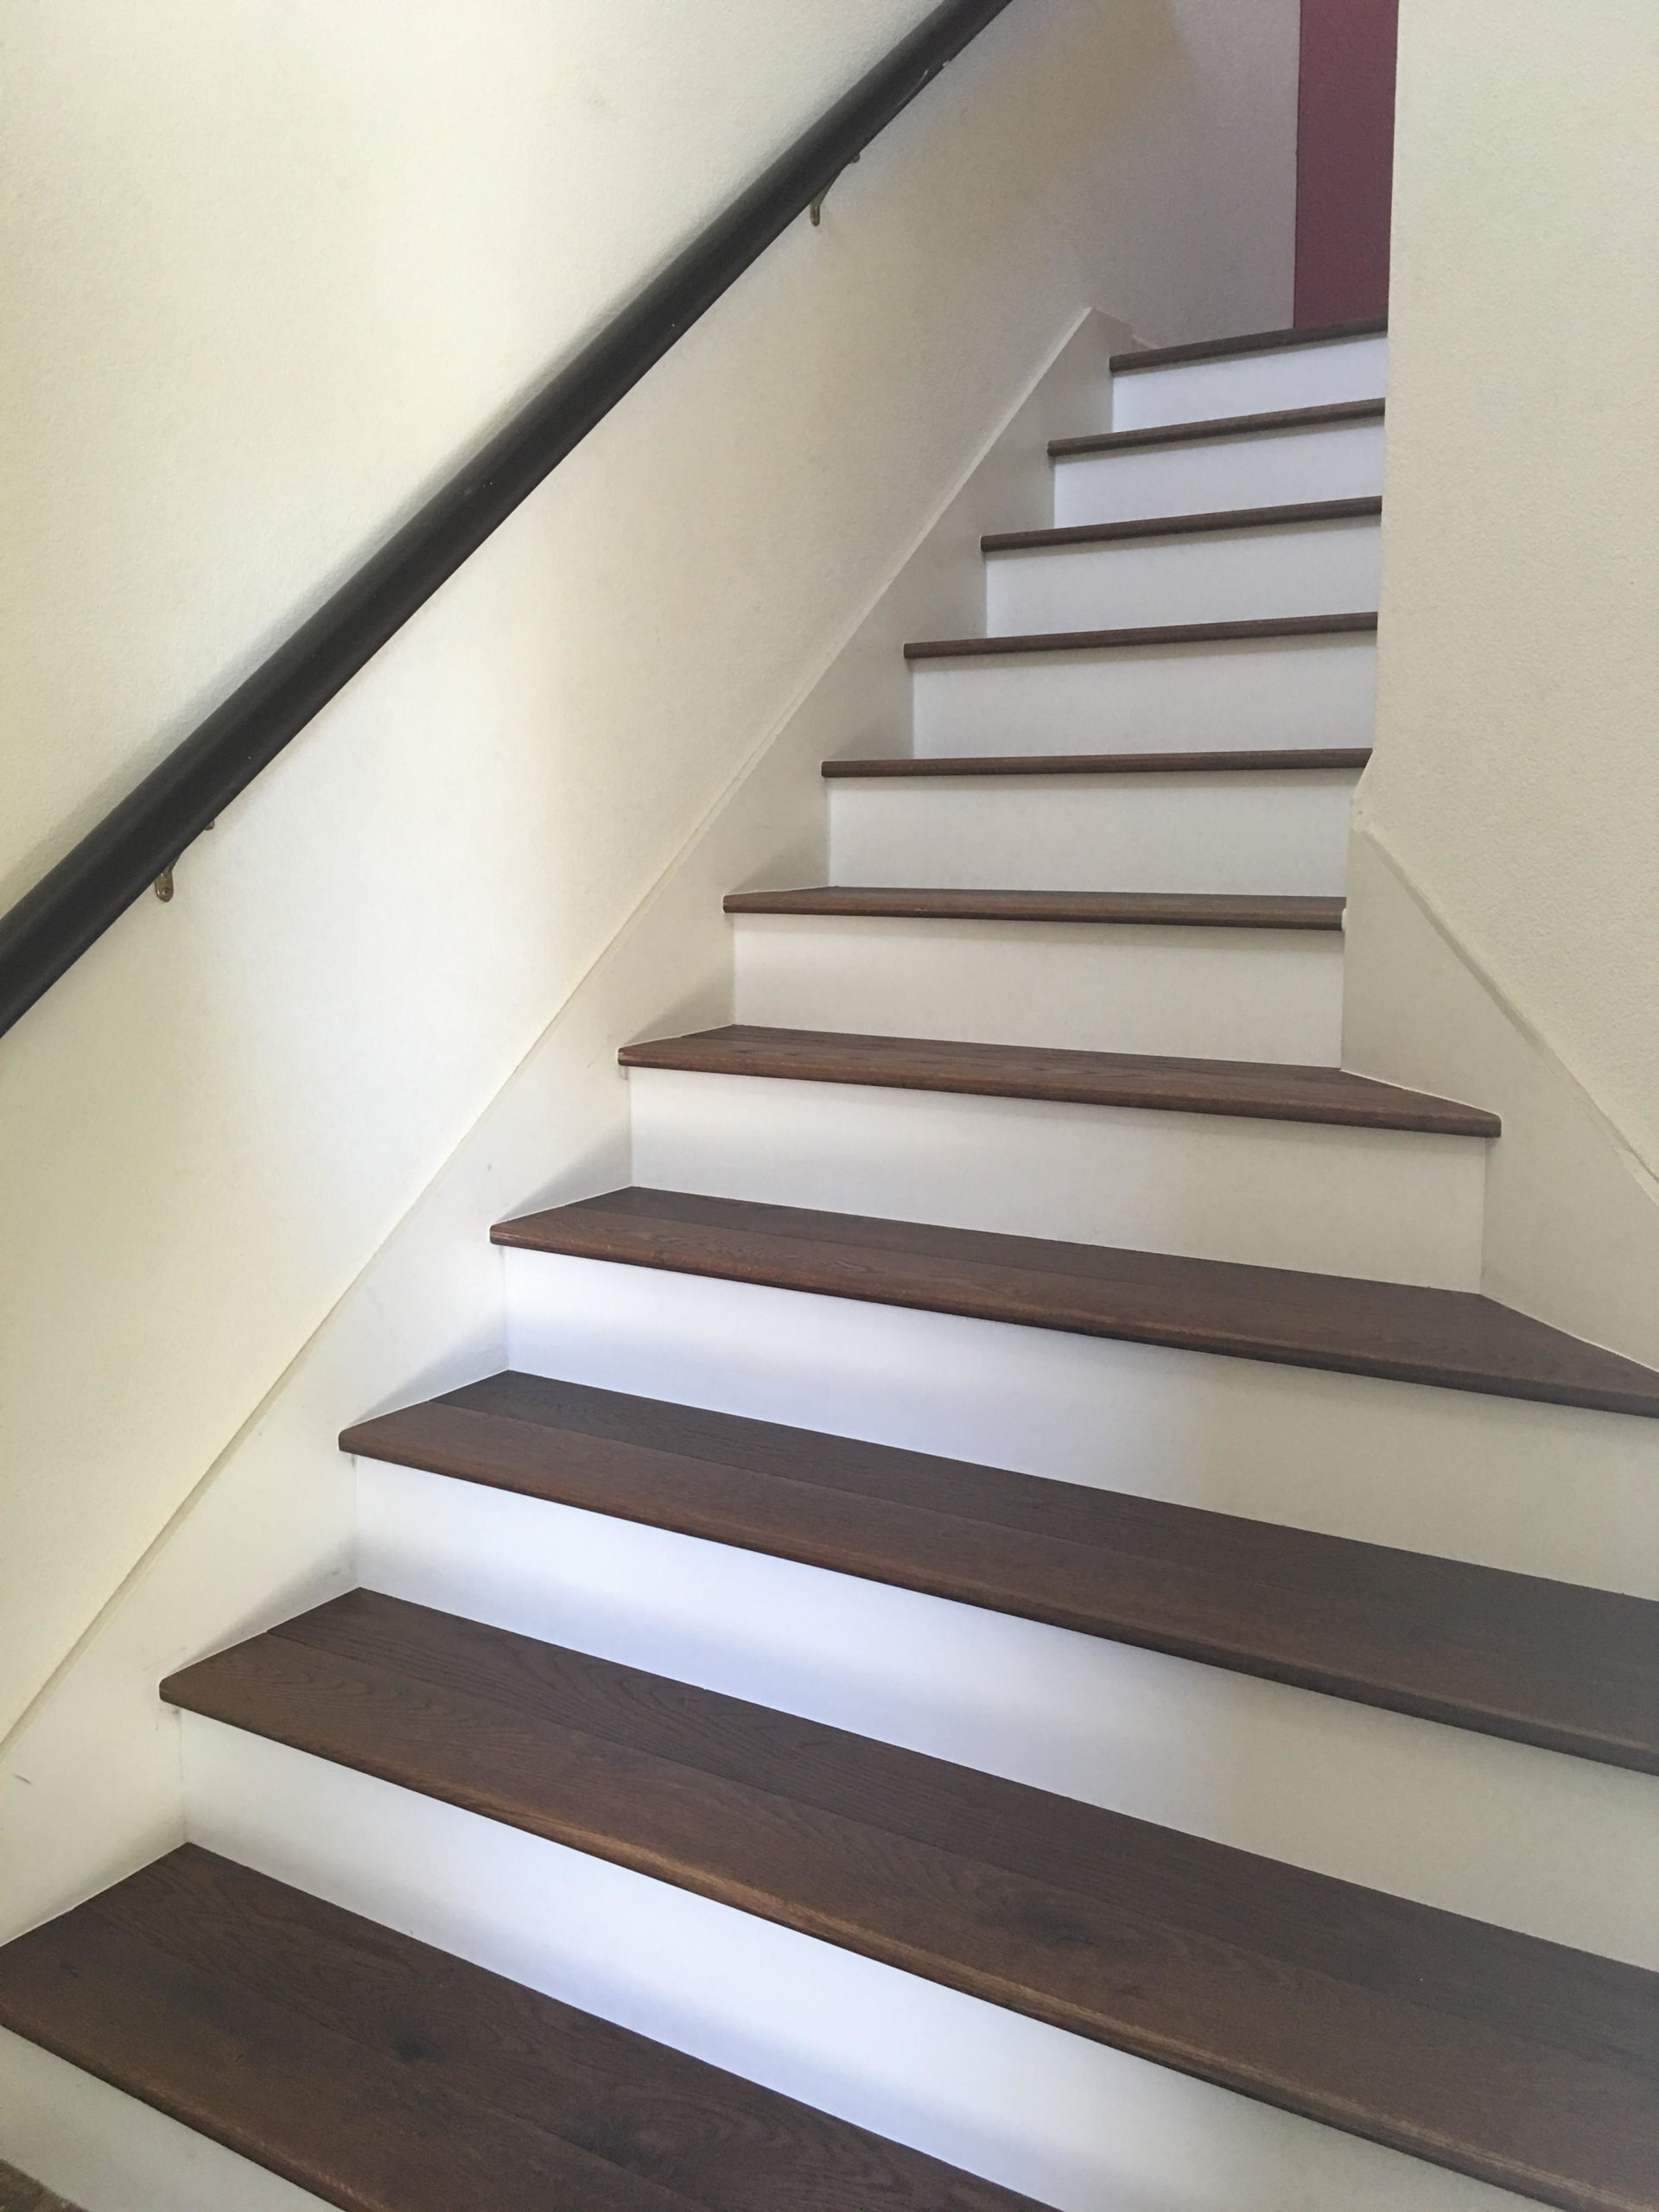 Remodeled stair with new solid wood treads installed in Oakland.